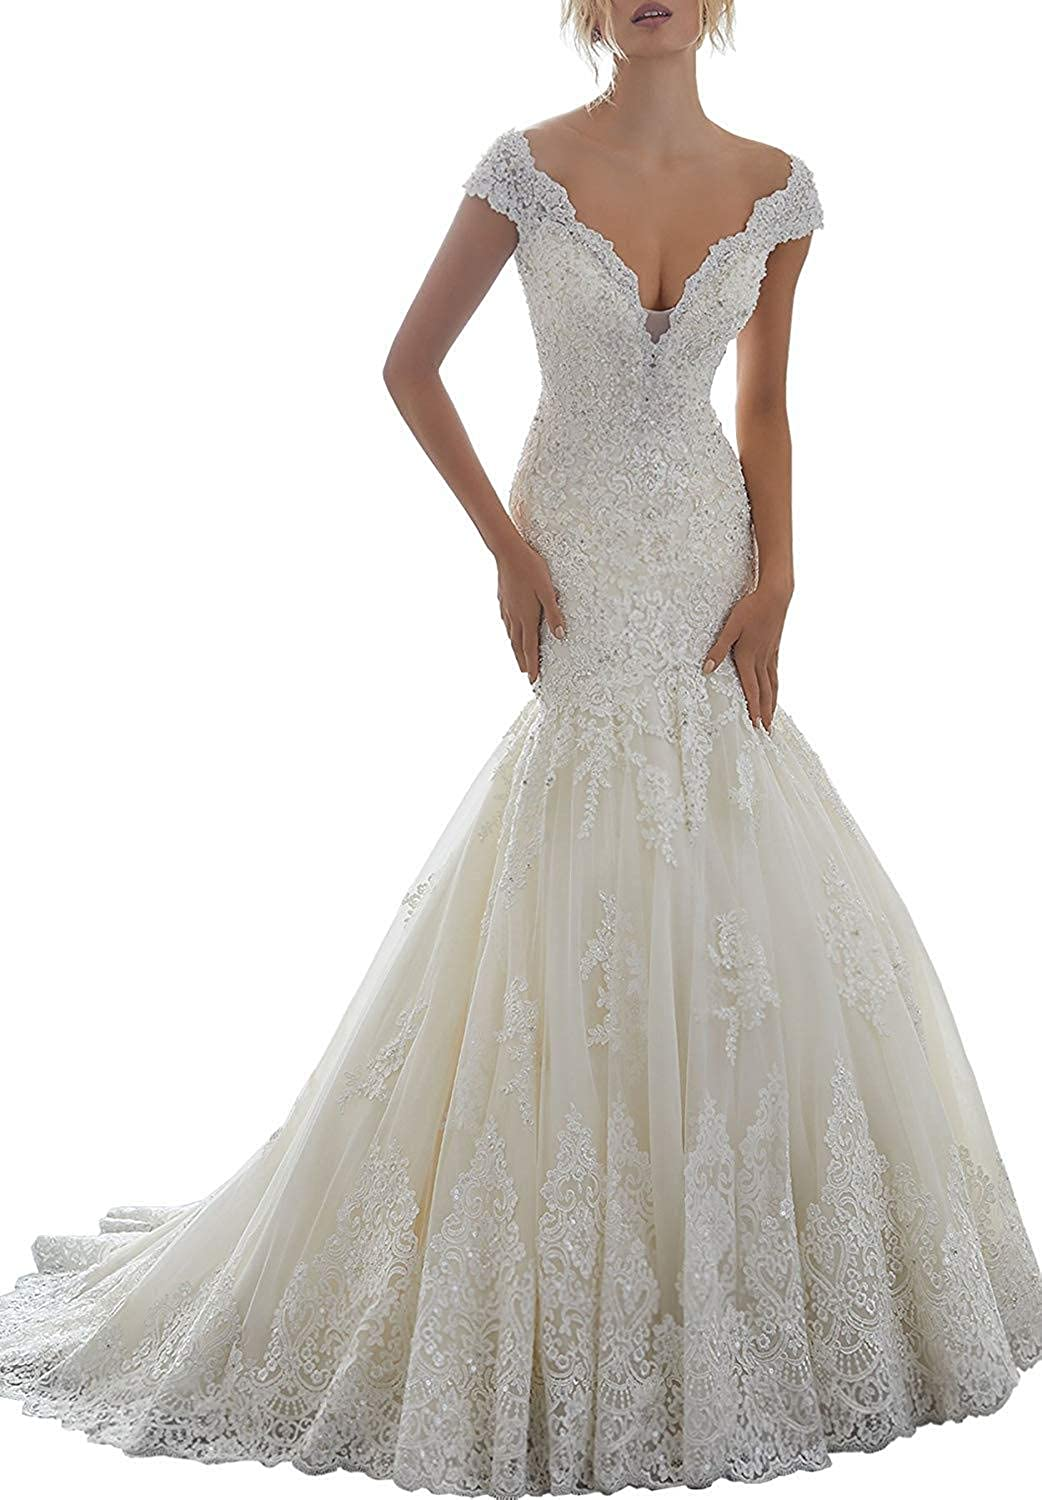 XingMeng Sexy V necl Lace Tulle Mermaid Wedding Dress Beaded Backless Bridal Gowns